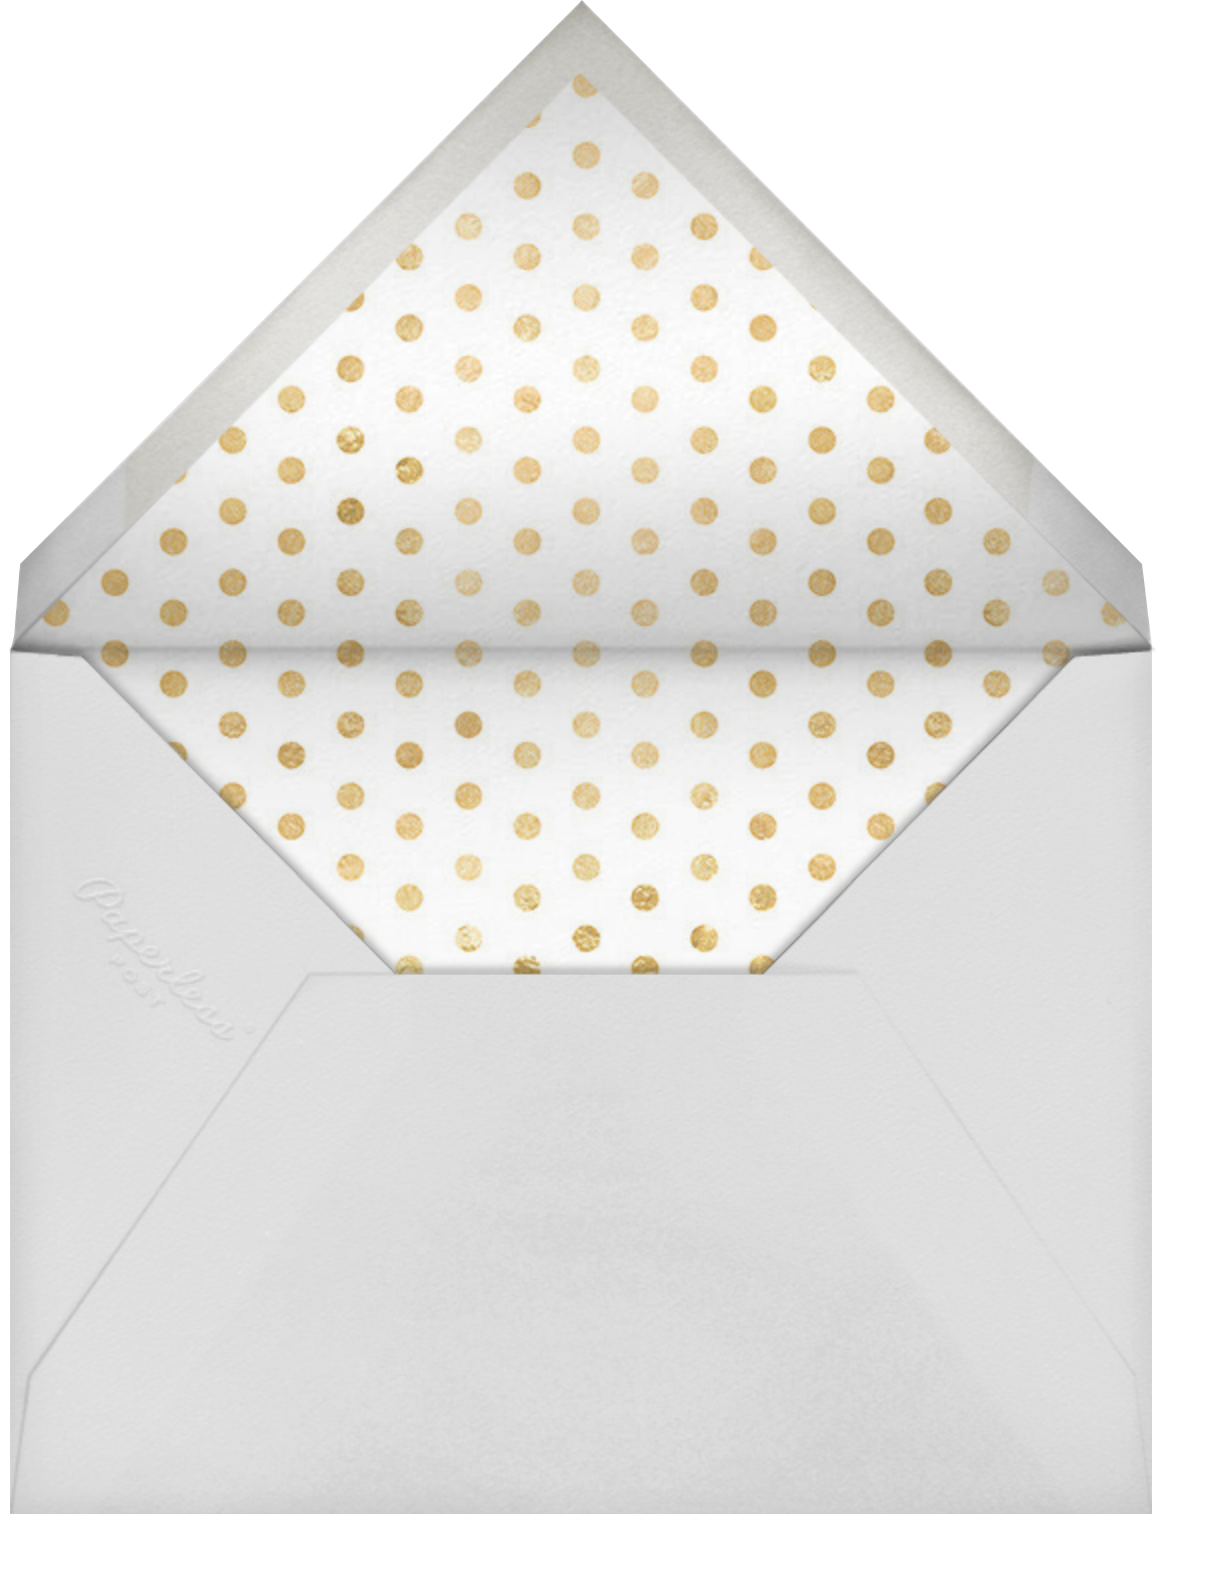 Buttercup Garland - Rifle Paper Co. - Save the date - envelope back